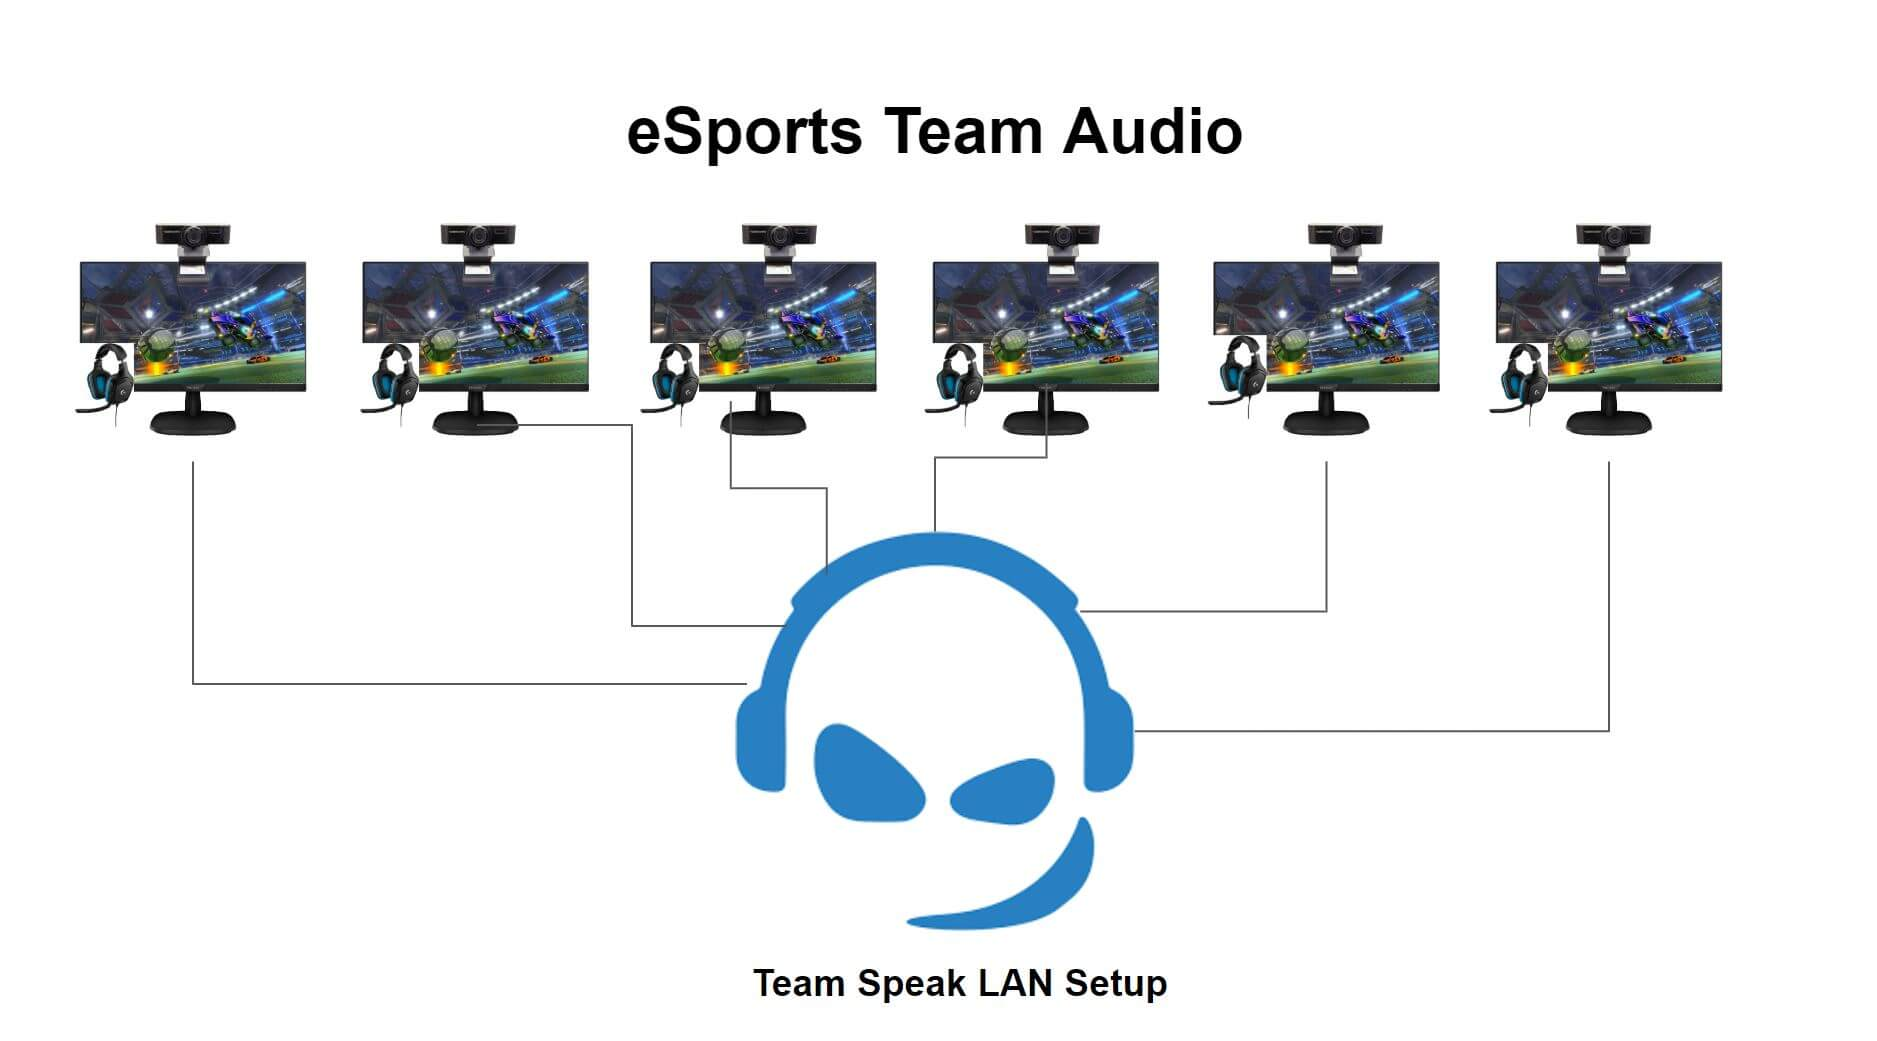 Esports Team Audio